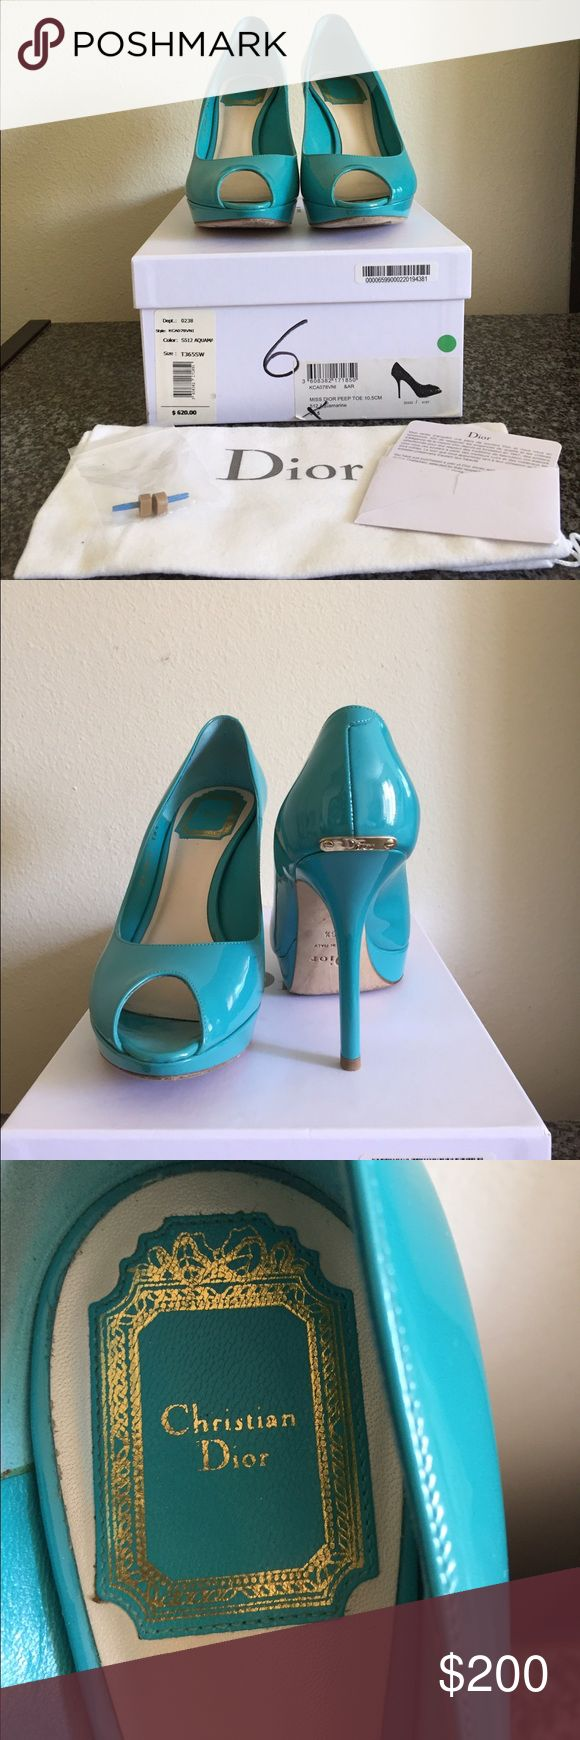 Christian Dior 'Miss Dior' Peep toe platform pump Patent leather peep toe pump in Aquamarine. Comes with box, dust bag, and extra heel taps. Christian Dior Shoes Heels